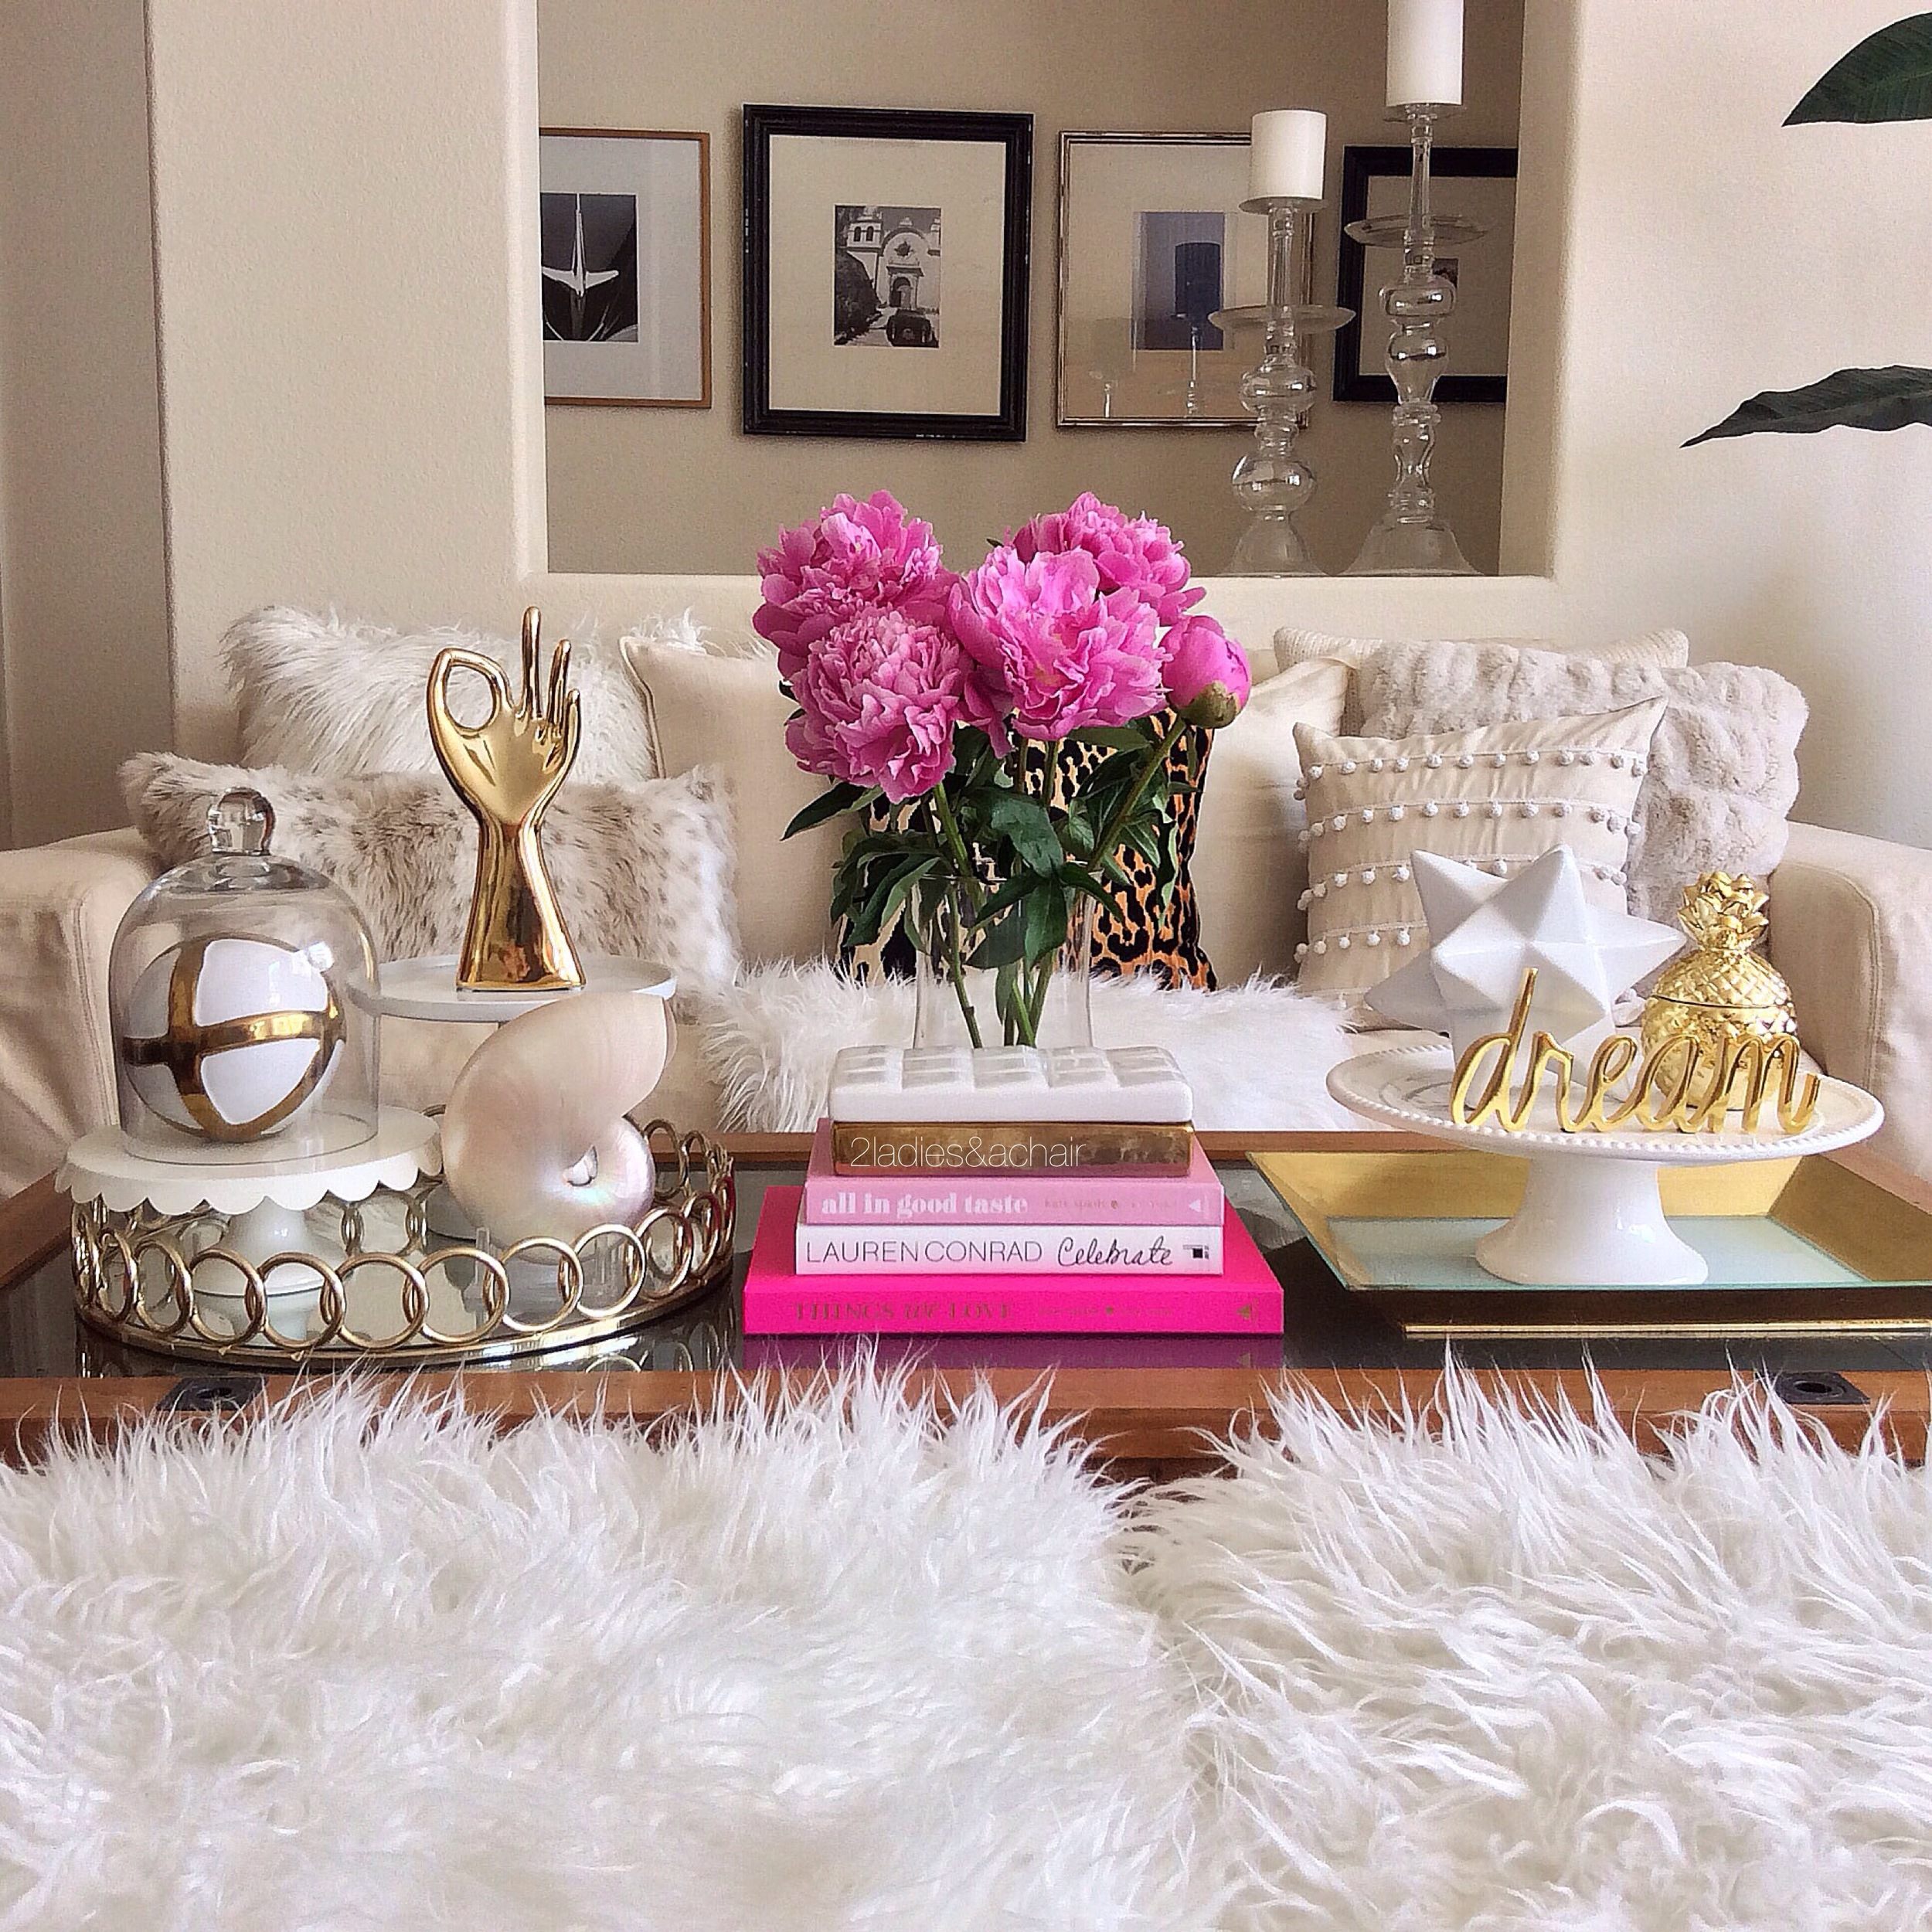 Here my sofa is all done in creams and white. I couldn't resist adding these beautiful pink peonies (and pink books) to this colorless setting.